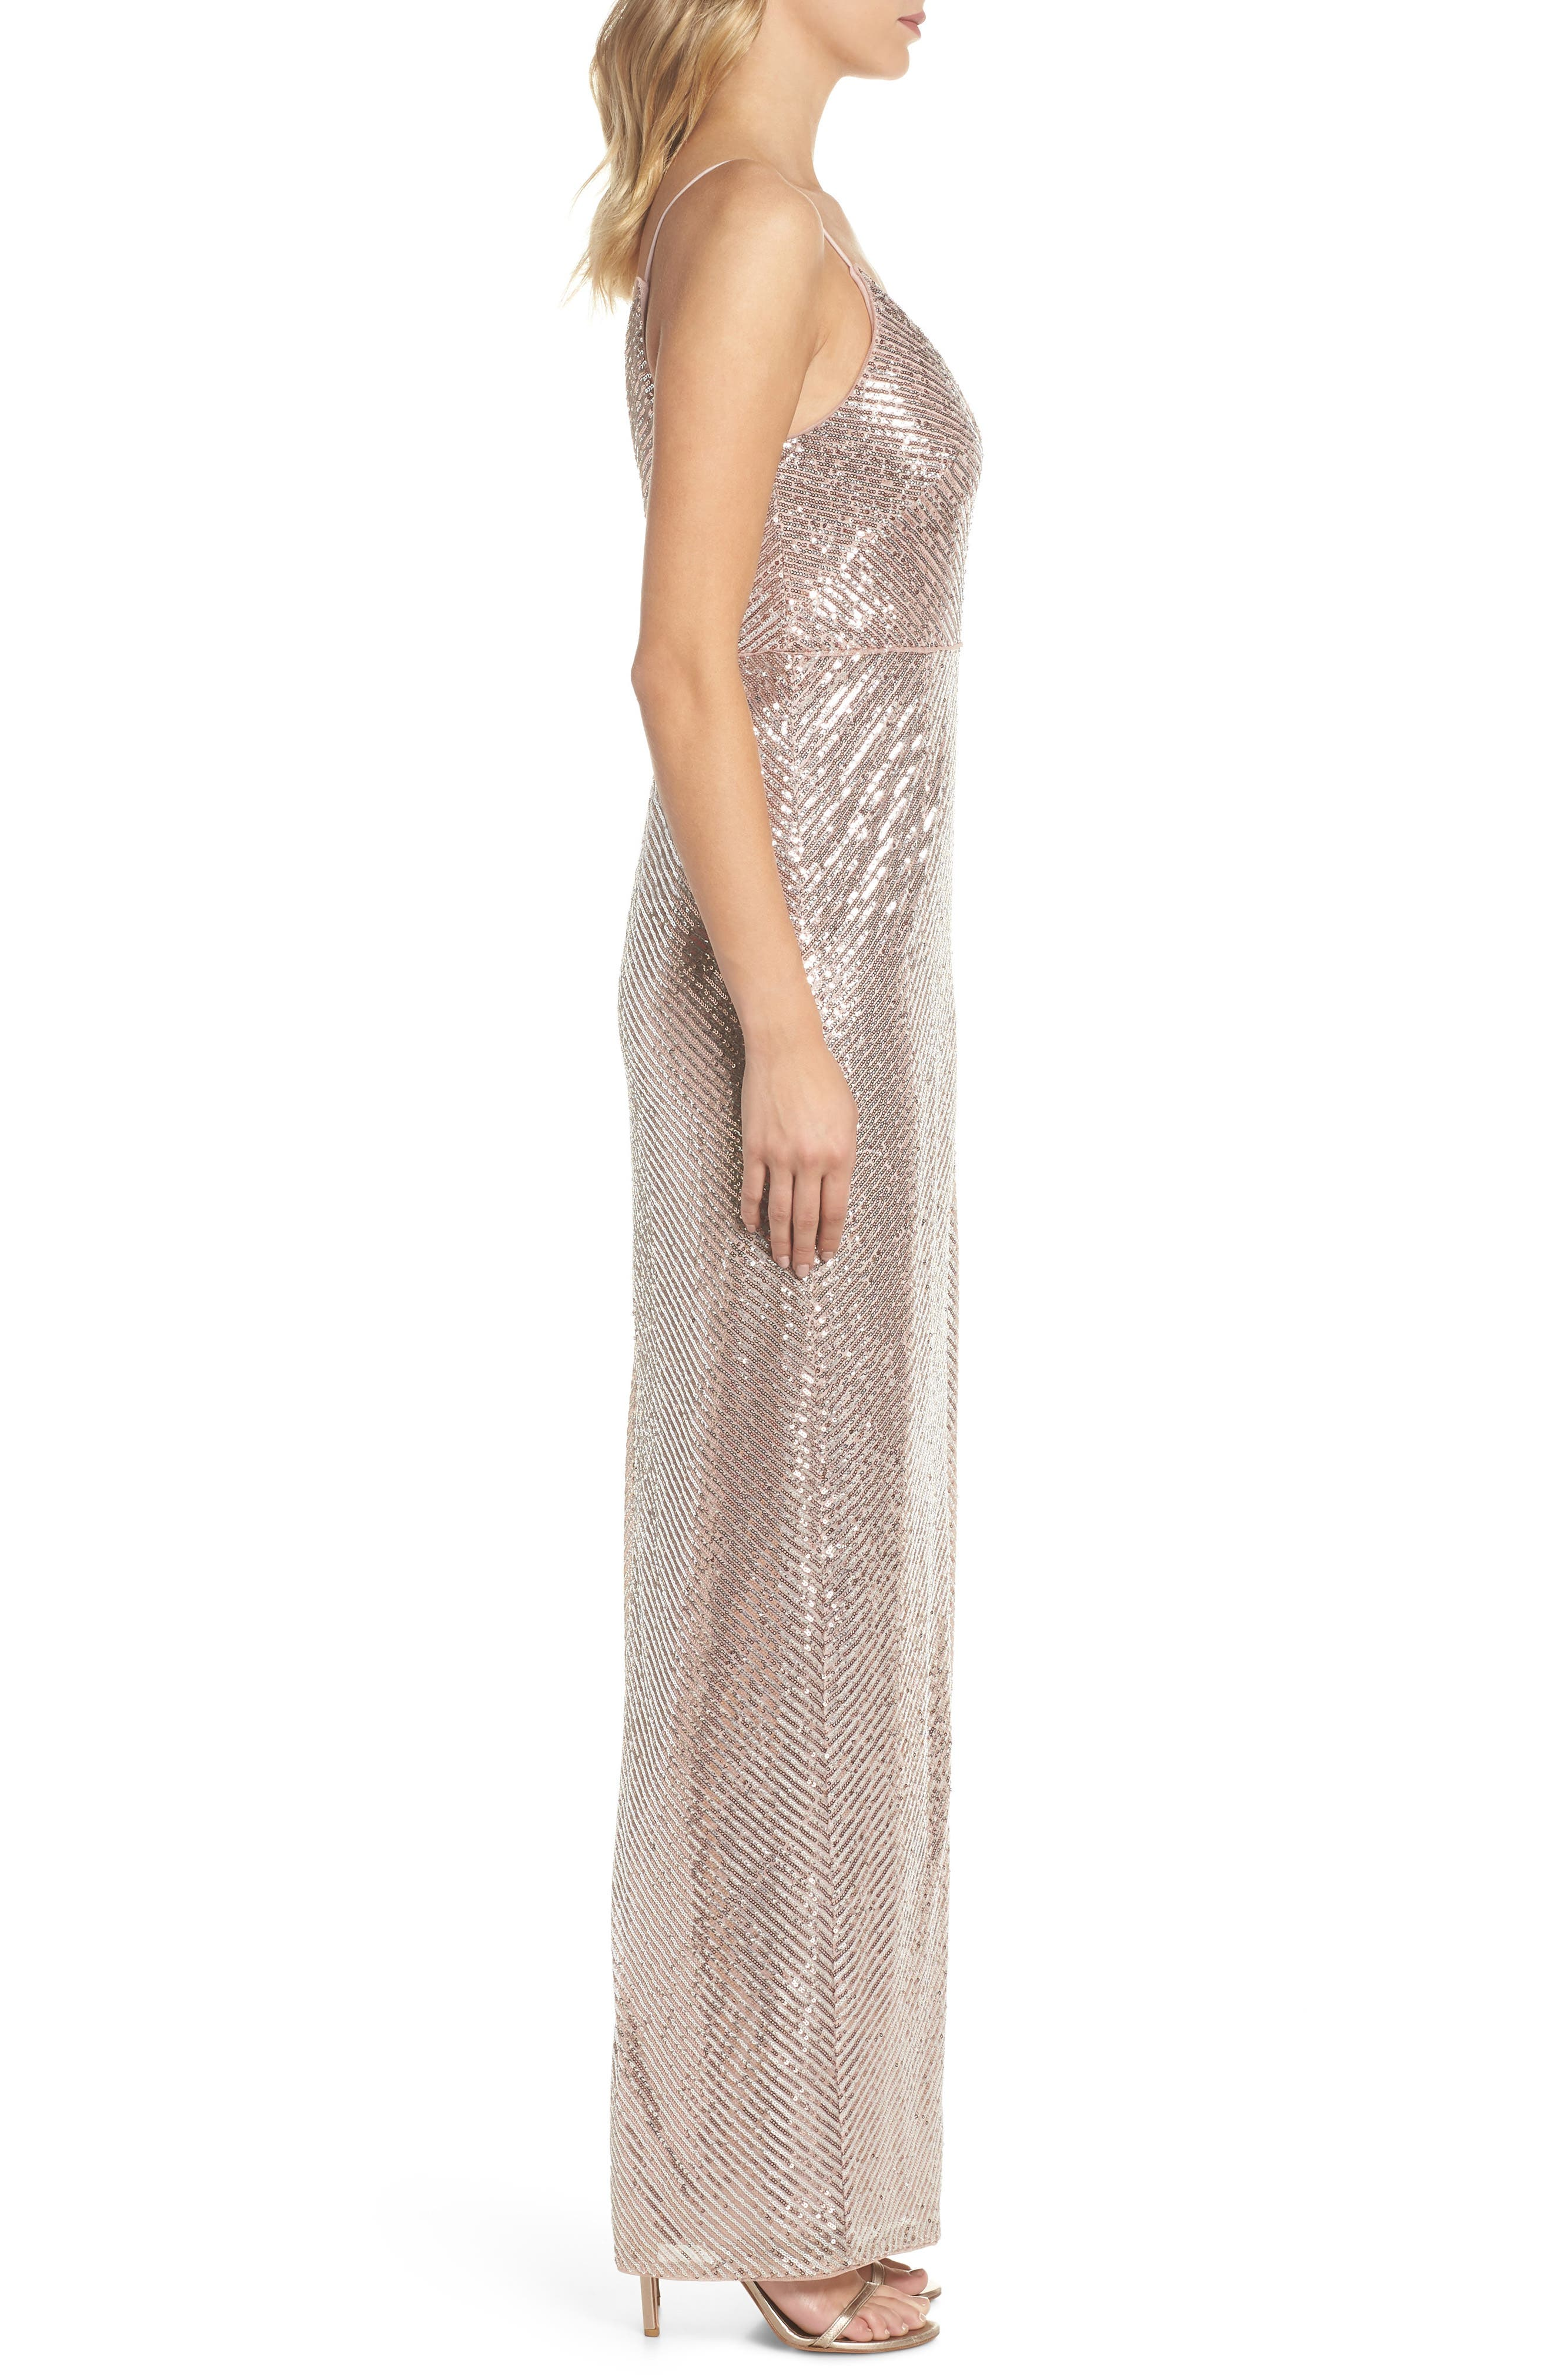 ADRIANNA PAPELL,                             Stripe Sequin Gown,                             Alternate thumbnail 3, color,                             680